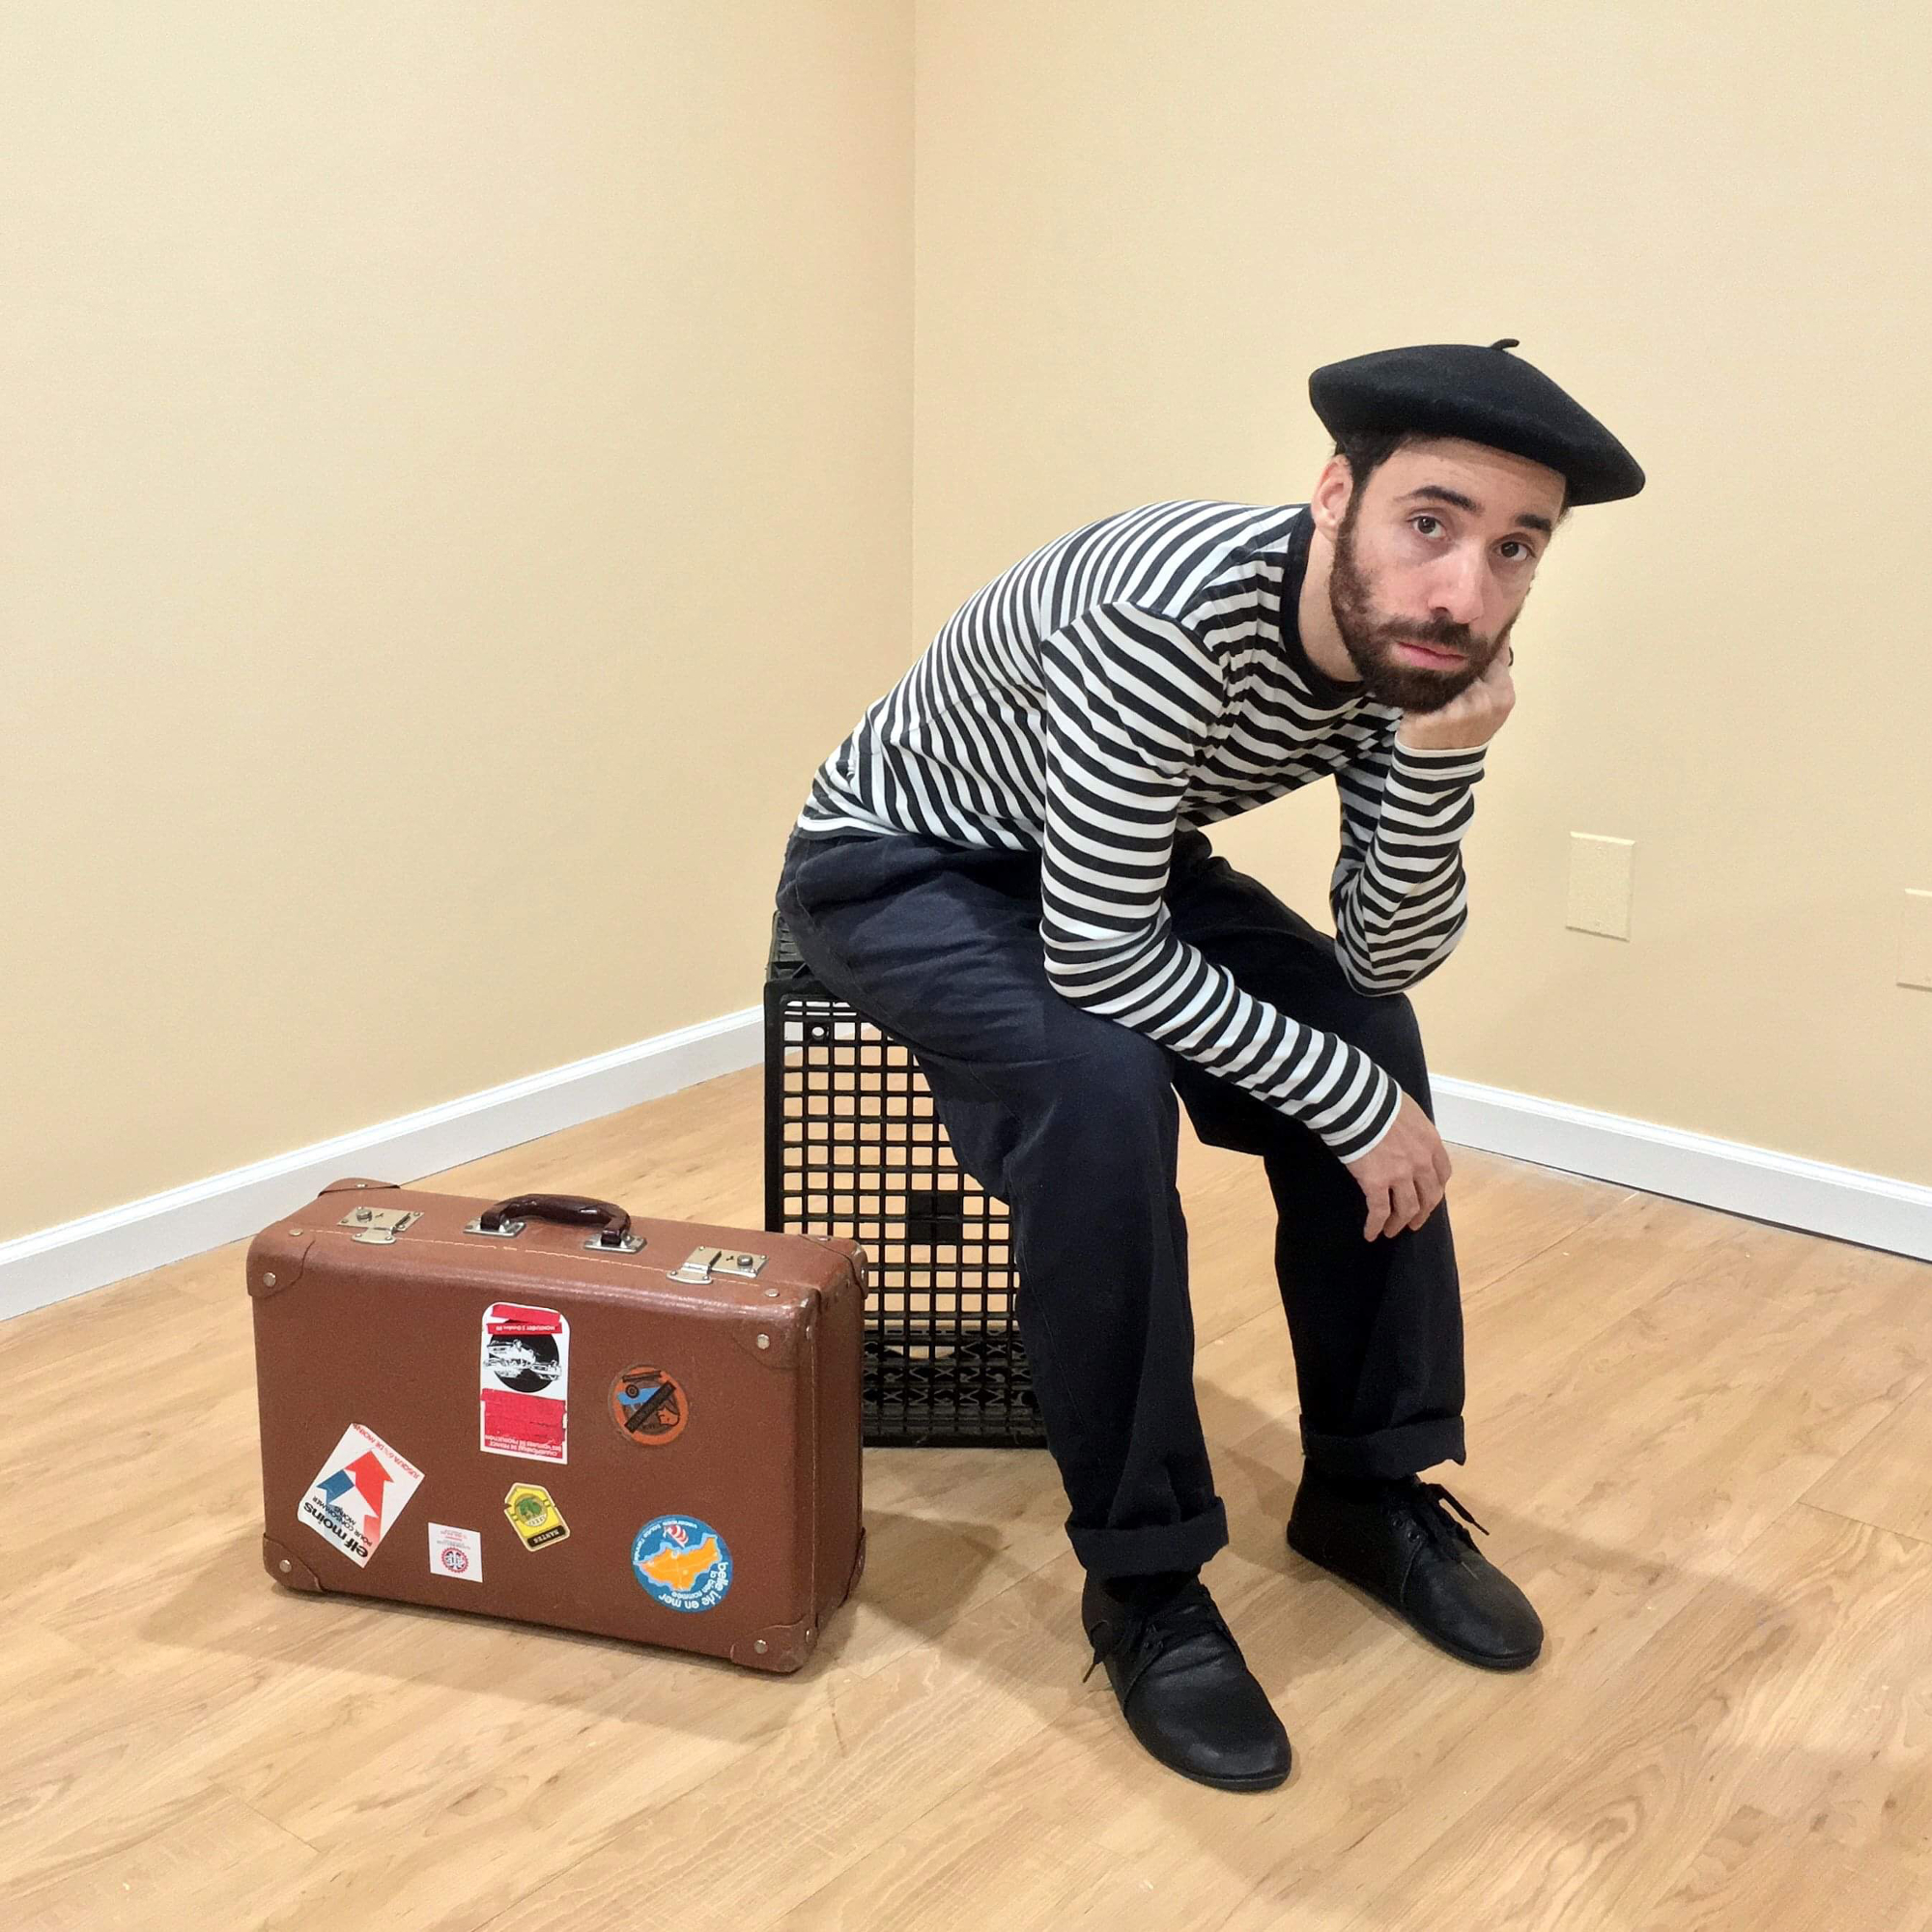 Michael sitting on crate with suitcase - web.jpg